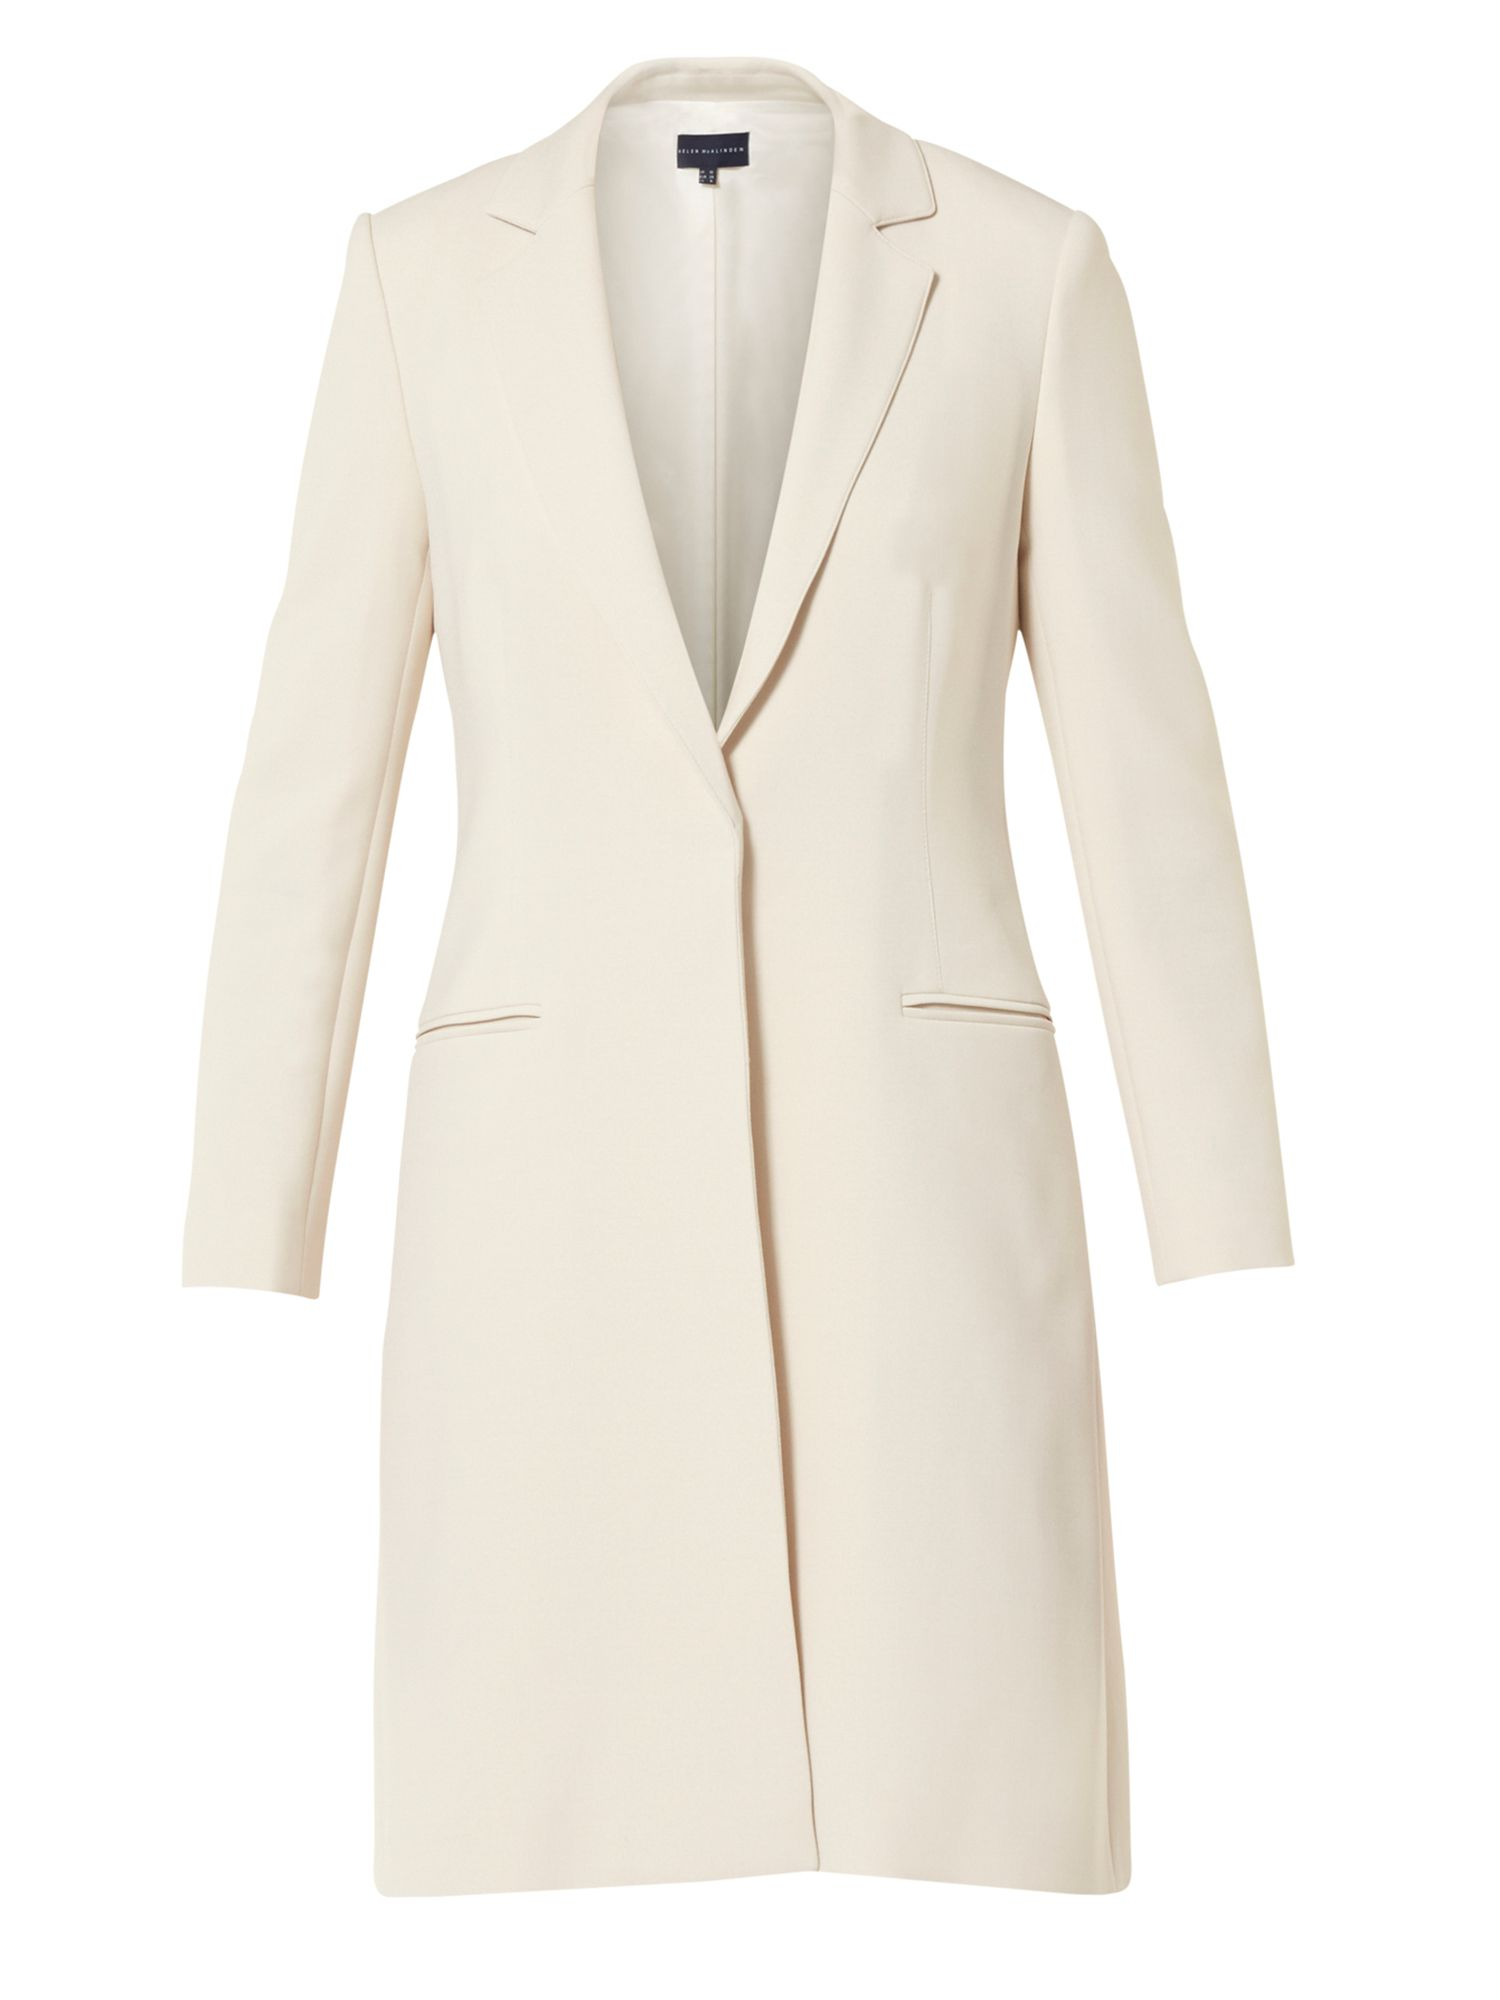 Helen McAlinden Lorraine Long Jacket, White